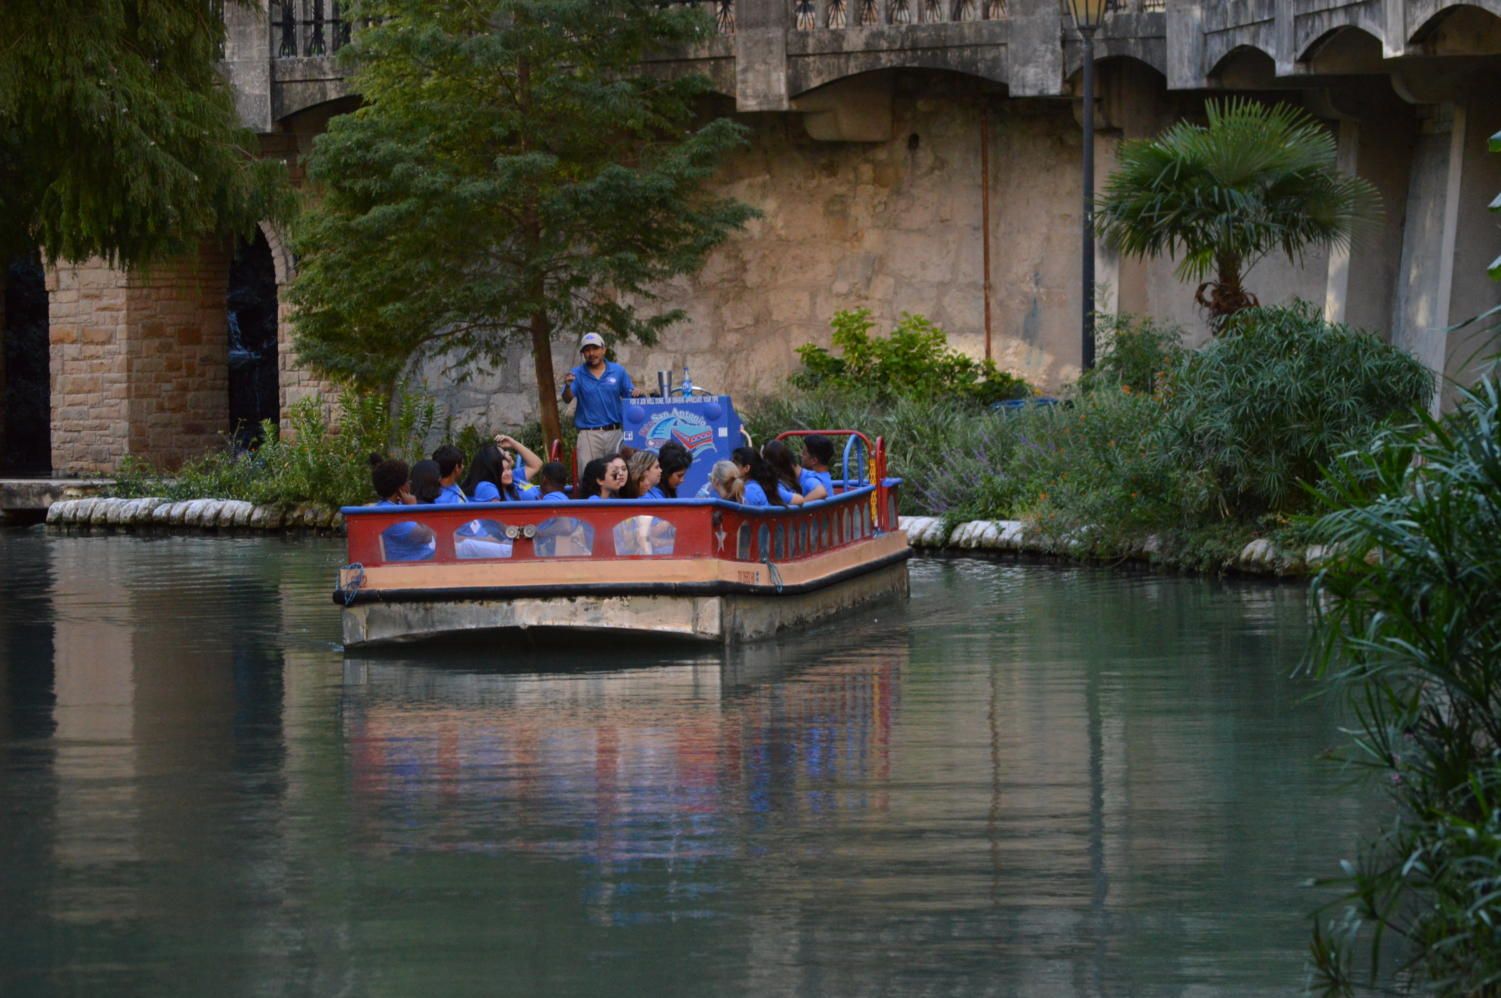 A river boat floats next to the river walk in San Antonio, TX on Oct. 16, 2016. (Jaclyn Harris / The Talon News)